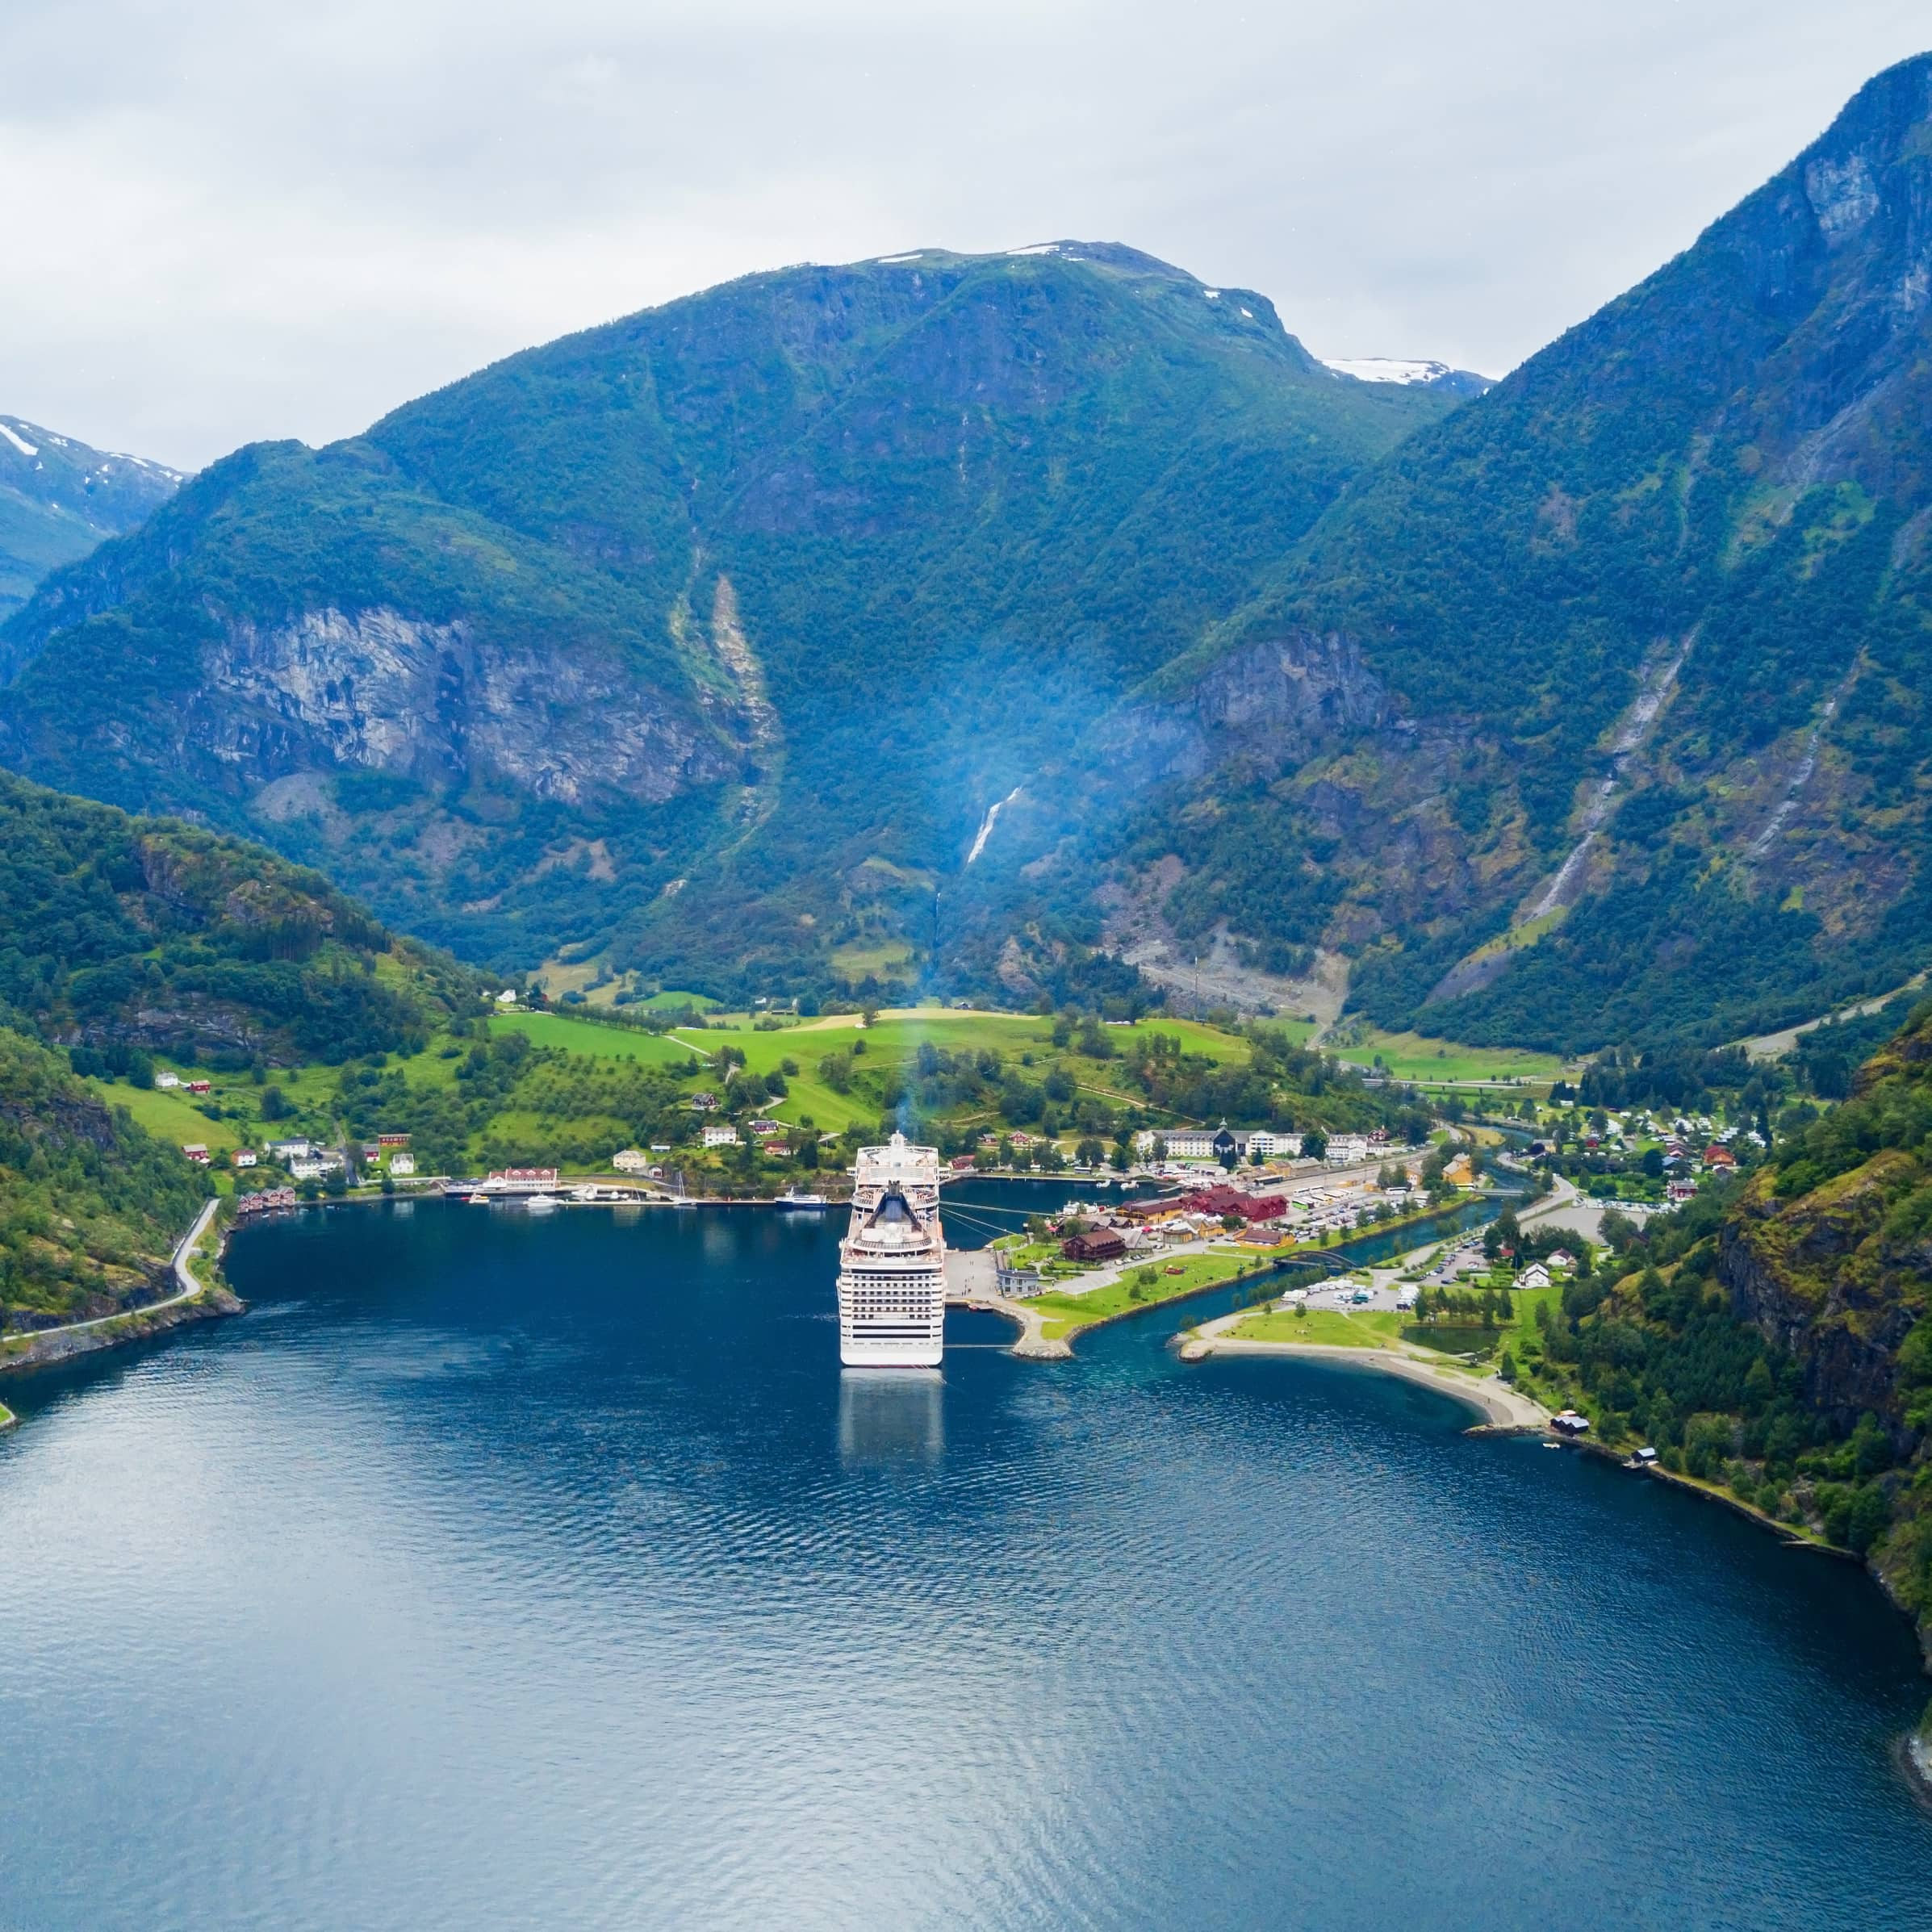 An aerial view of Flaam and the cruiseport with blue fjord water, the small village of Flaam surrounded by green gras fields and with majestic mountains right behind the village.